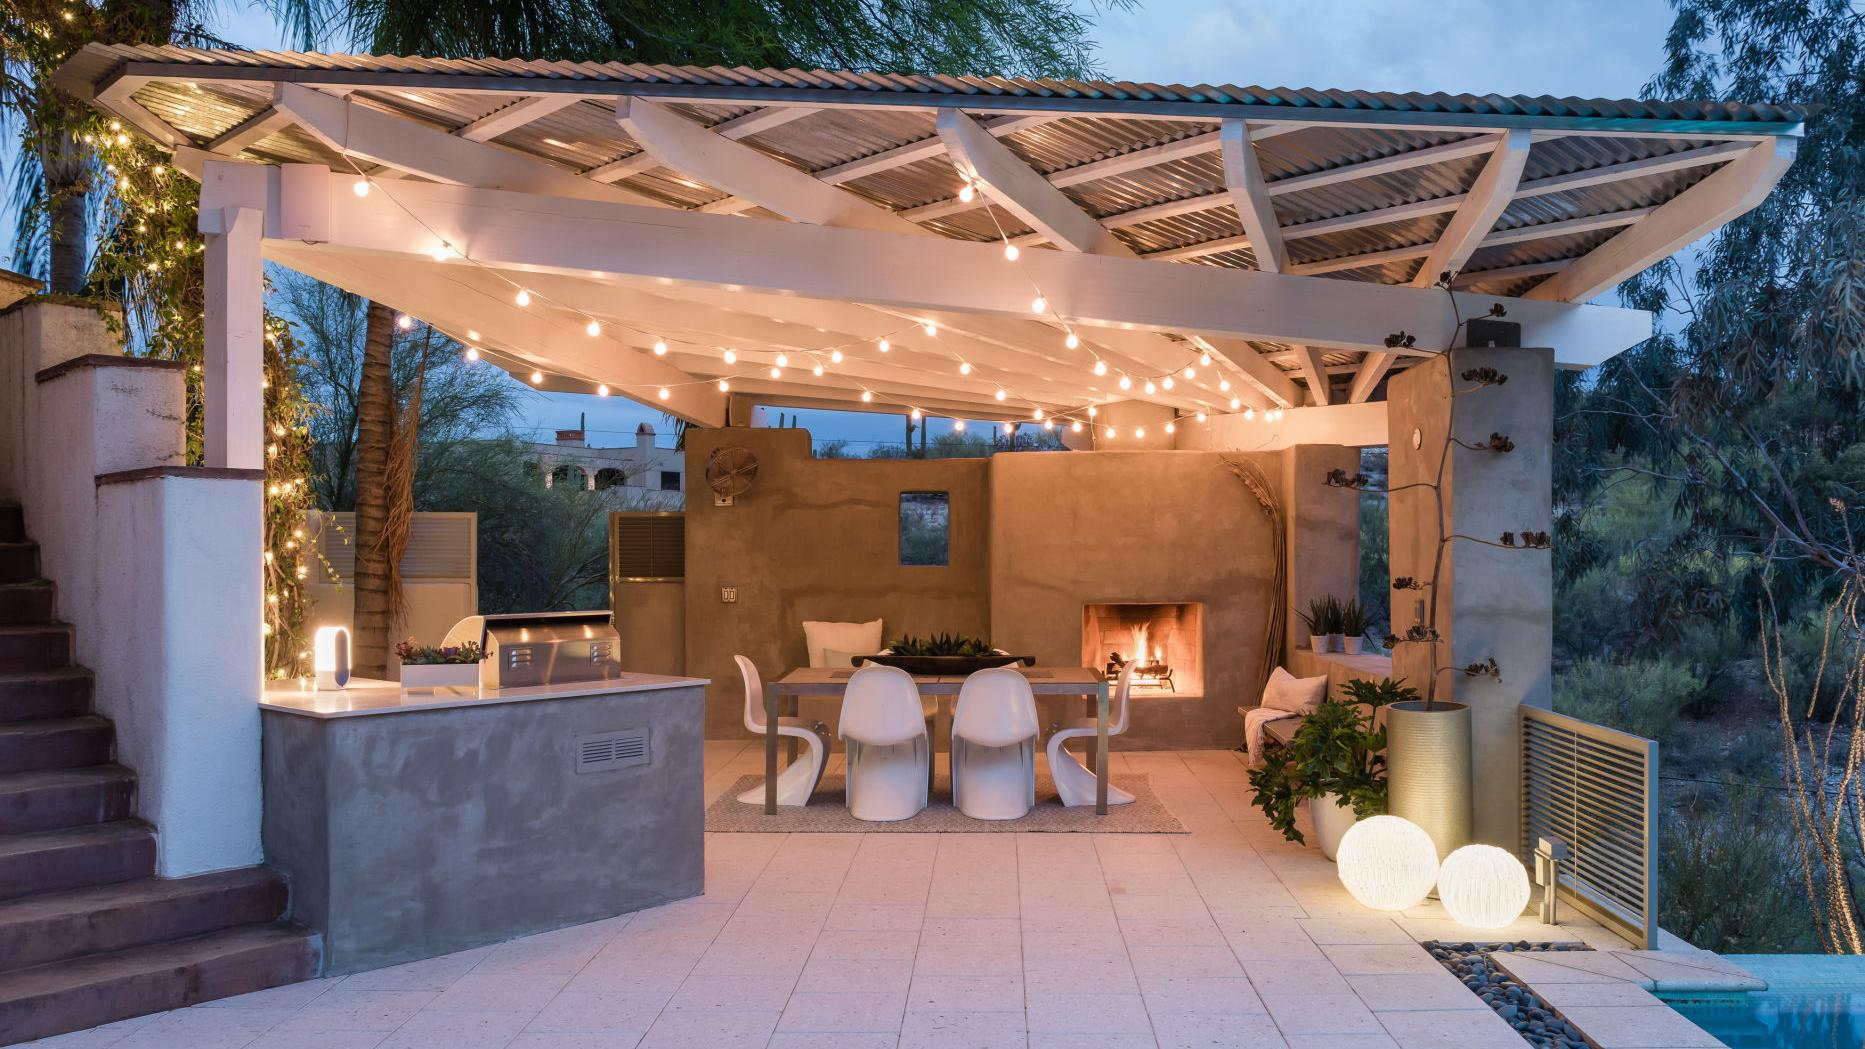 Tucson Landscape Designer S Award Winning Project Has A Must See View Home Garden Tucson Com